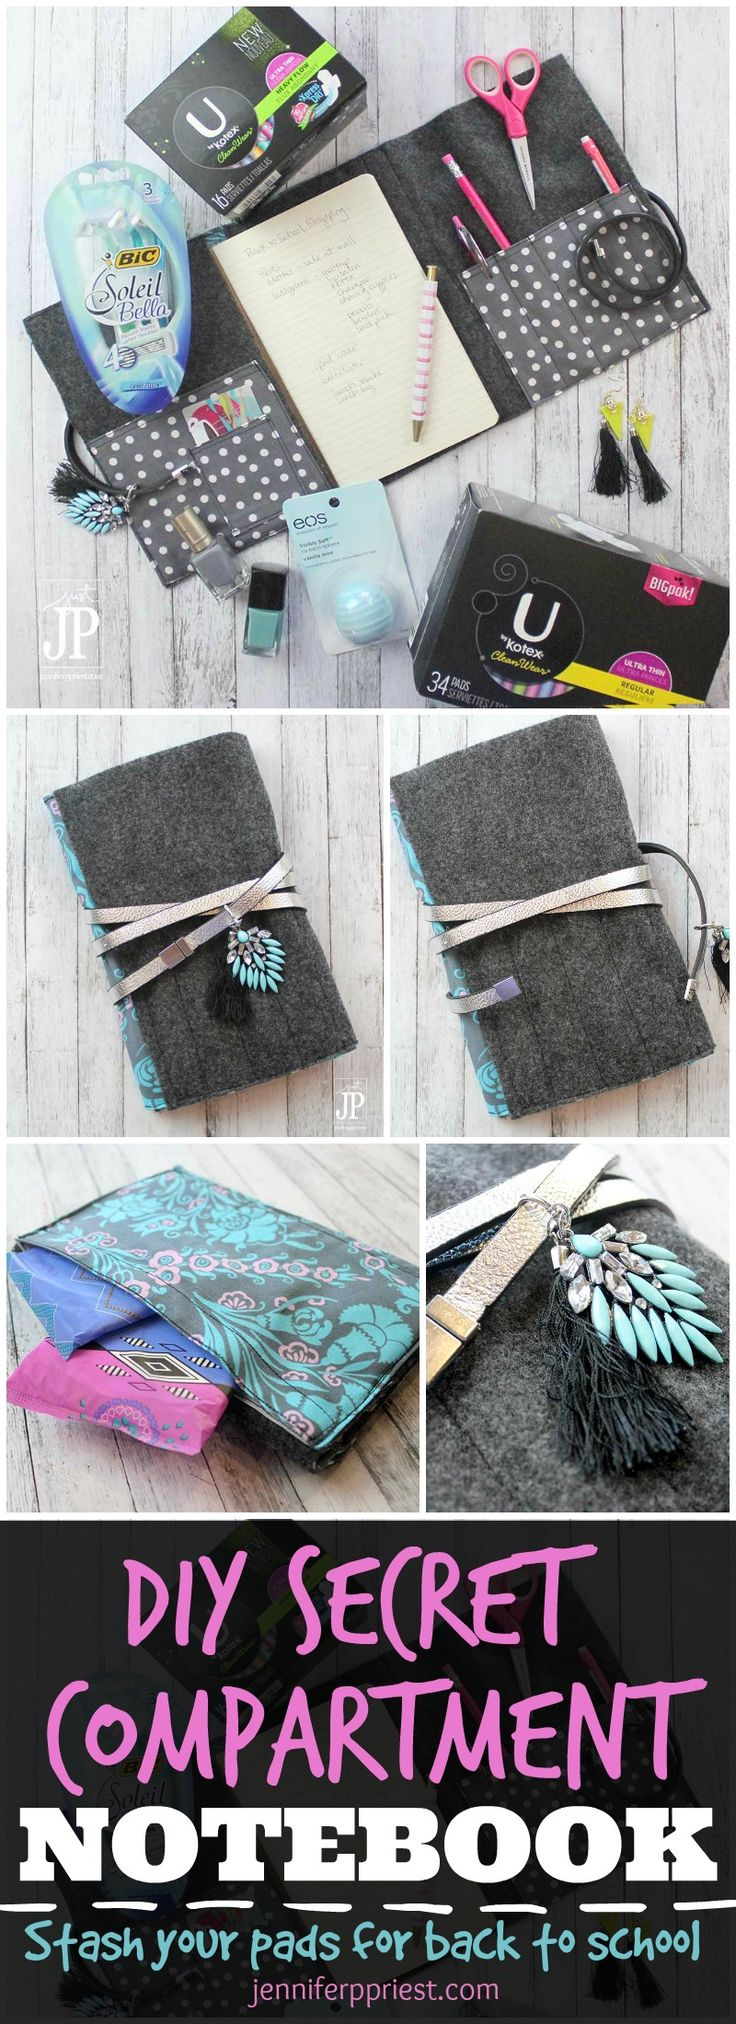 www.jenniferpprie... Create a DIY Notebook cover that looks like a clutch purse or notebook cover but has a secret compartment for storing pads like Kotex. Theres a full video tutorial for this project at the link above. Make this for back to school so your teen girl can discreetly store her pads or tampons and always be prepared - her friends will be happy that she has their back #CycleSurvival #ad #collectivebias